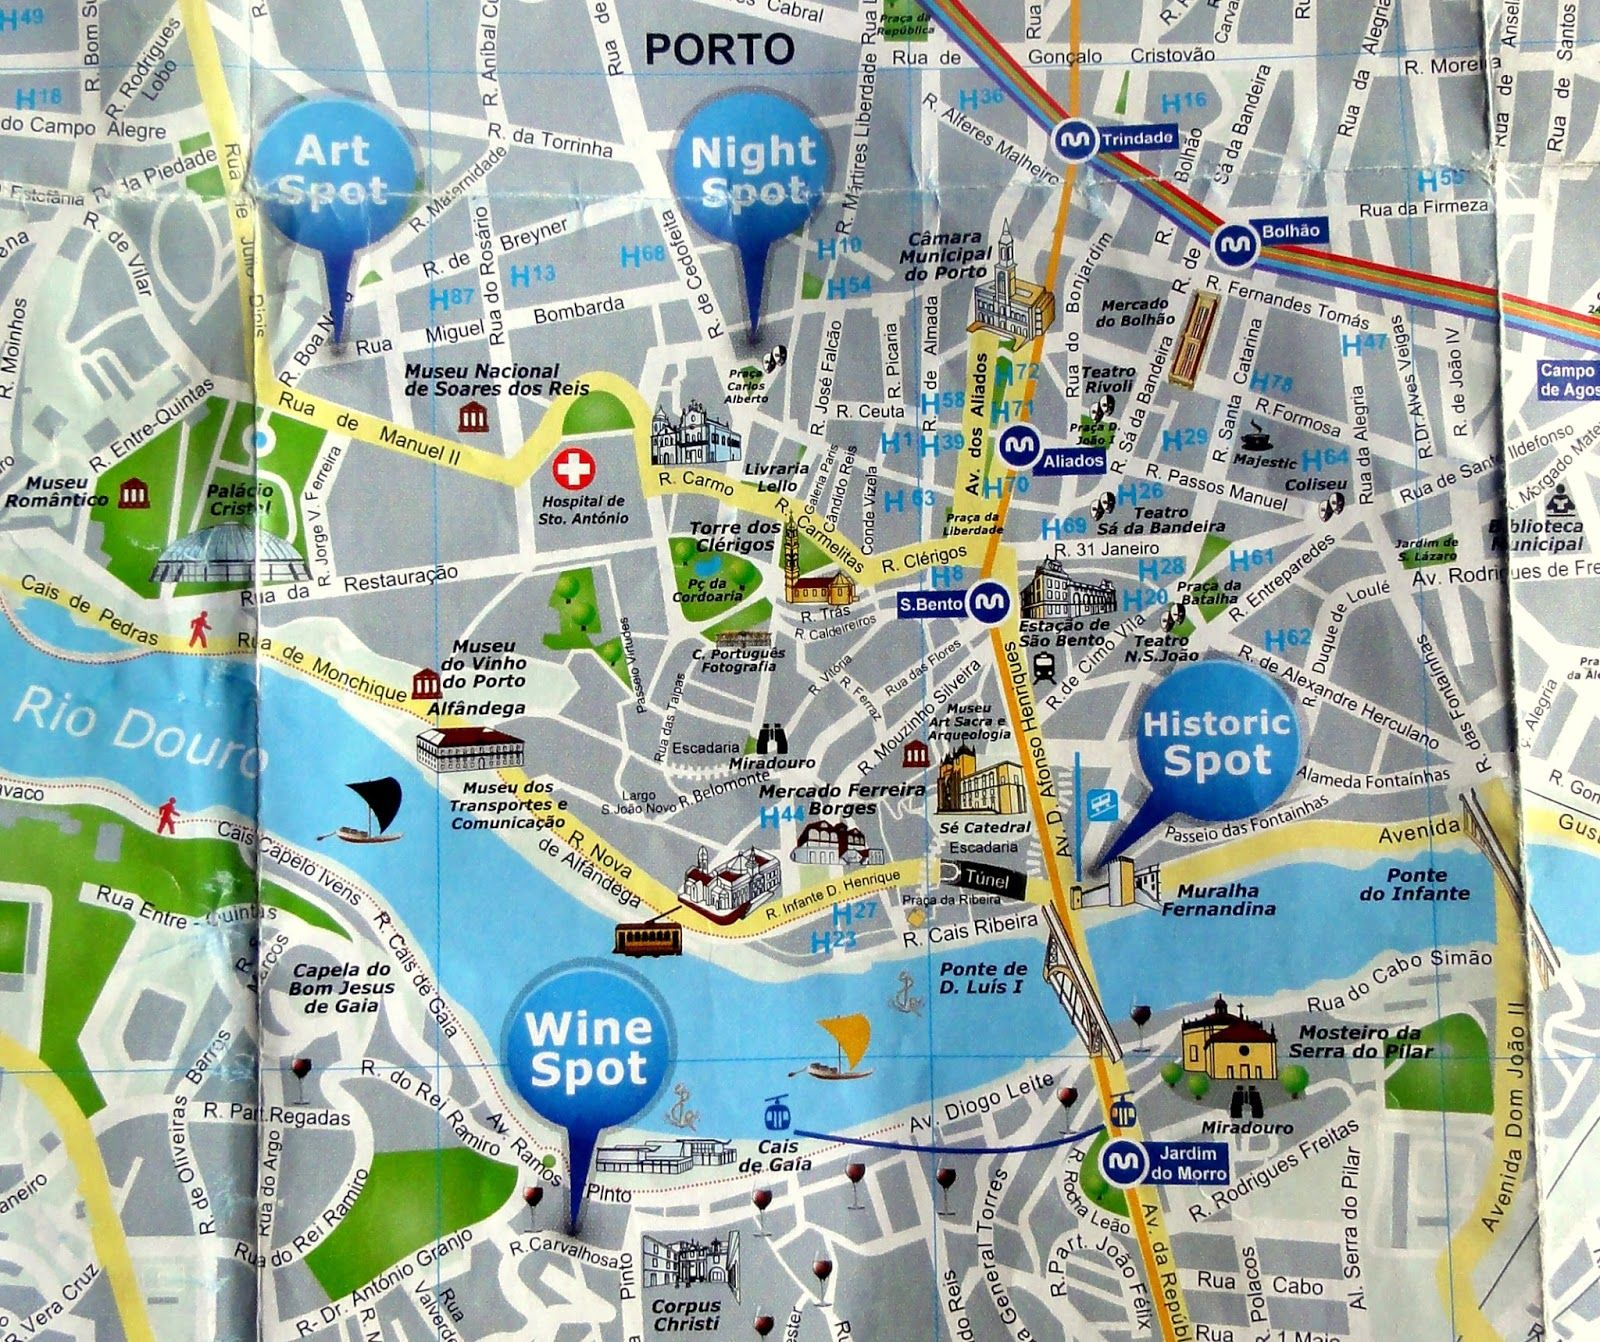 1DSC02543JPG 1600 1342 Places I wish I could see – Porto Tourist Map